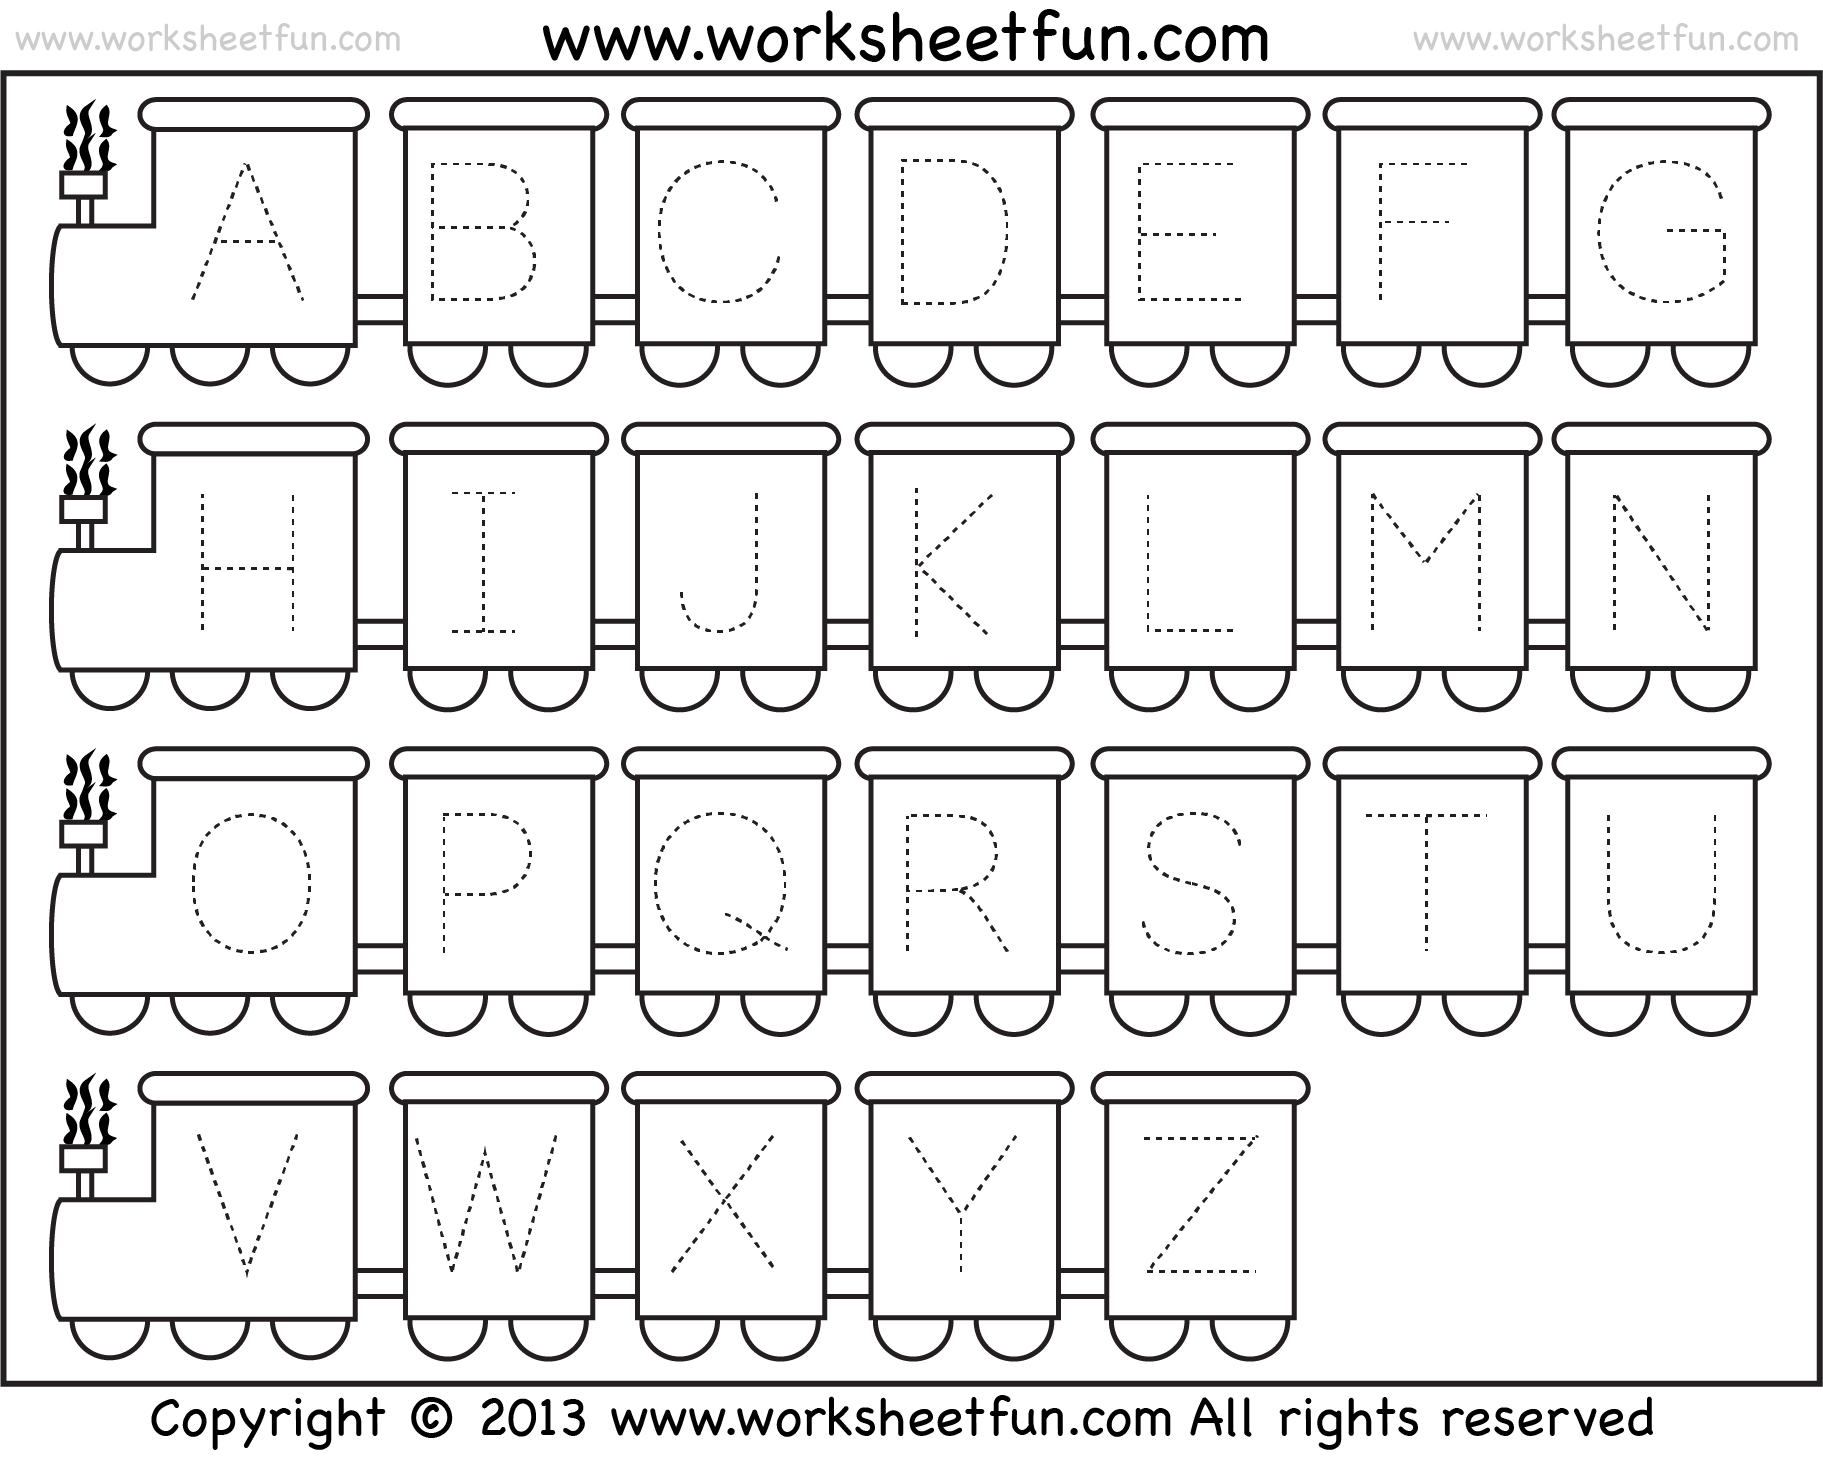 Worksheets Kindergarten Alphabet Tracing Worksheets letter tracing worksheet train theme free printable worksheets worksheet